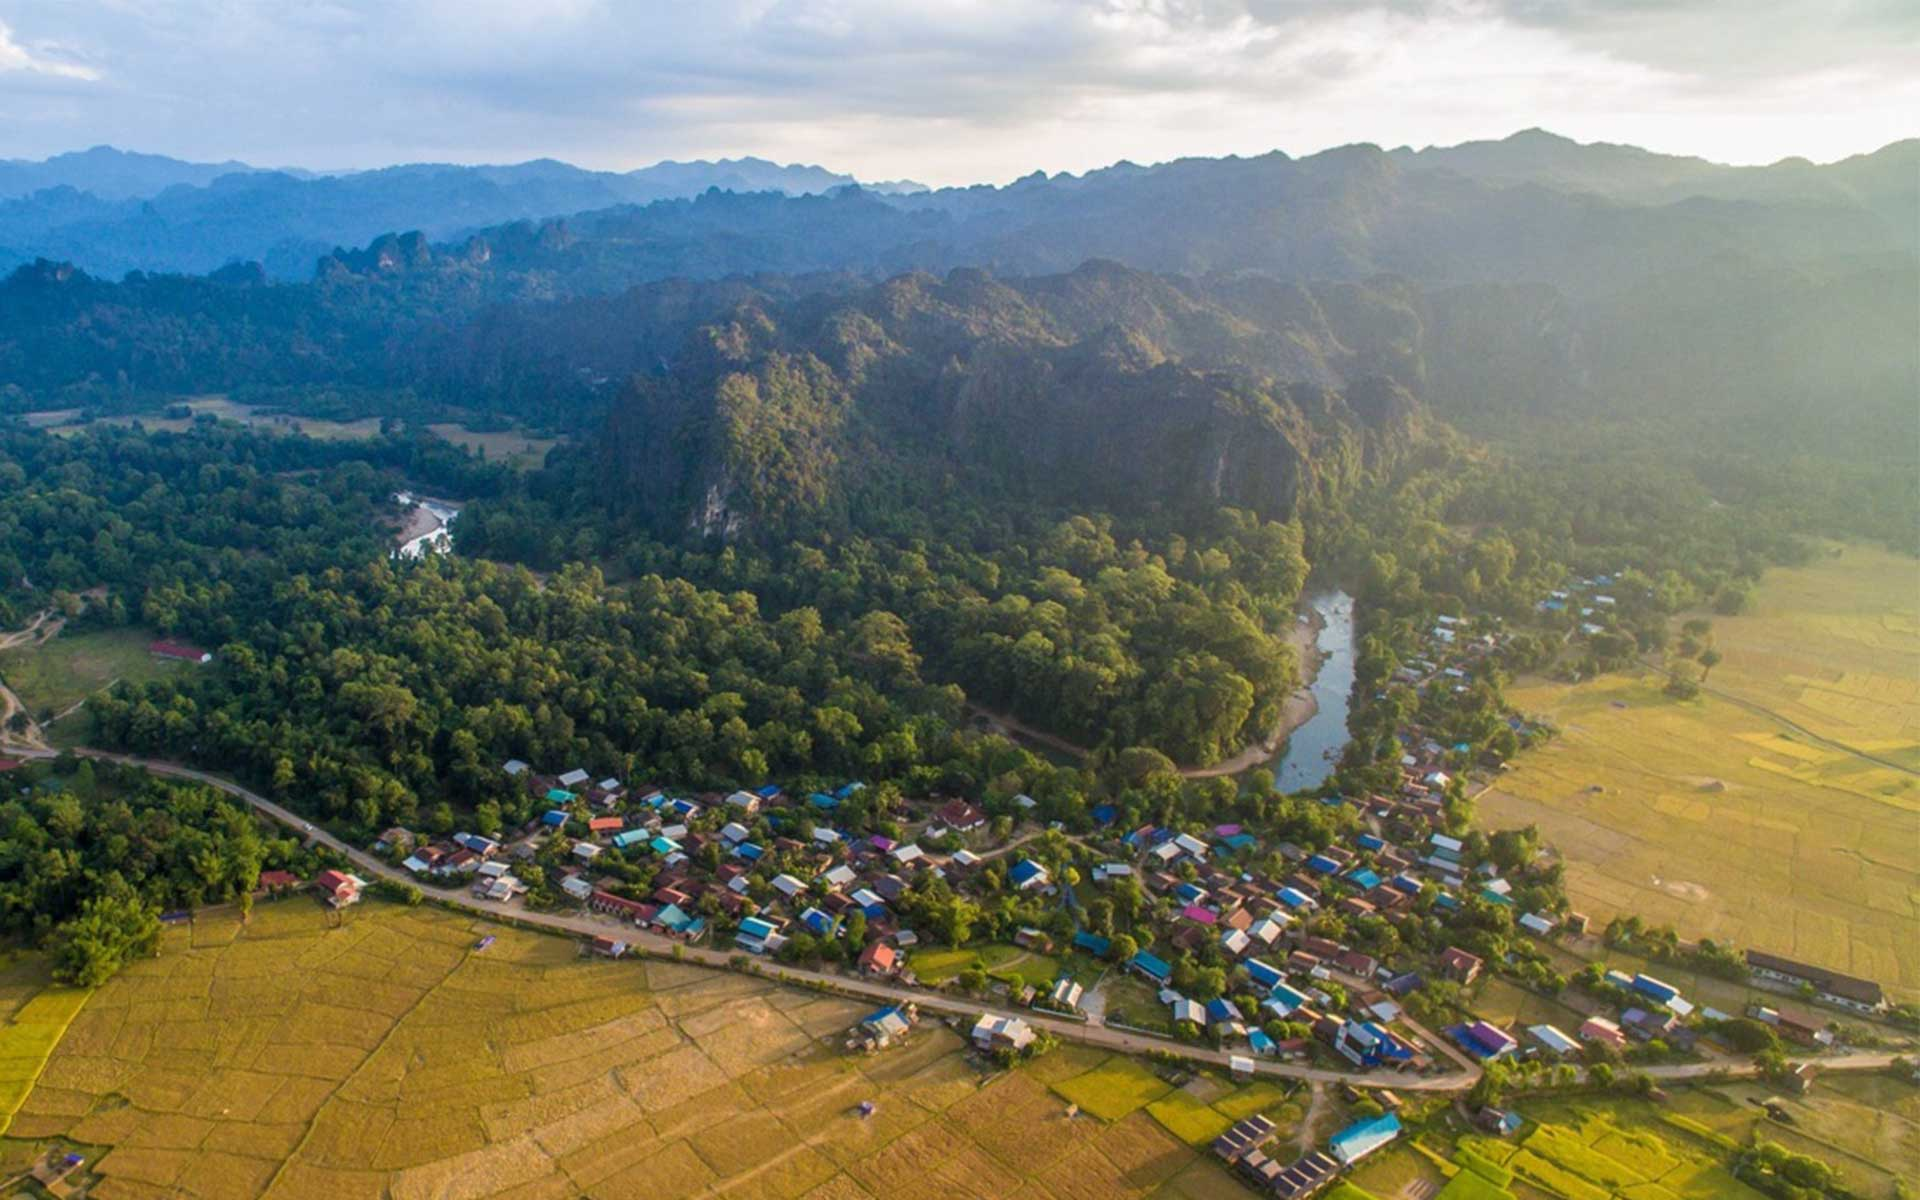 laos trips: Topography in Laos